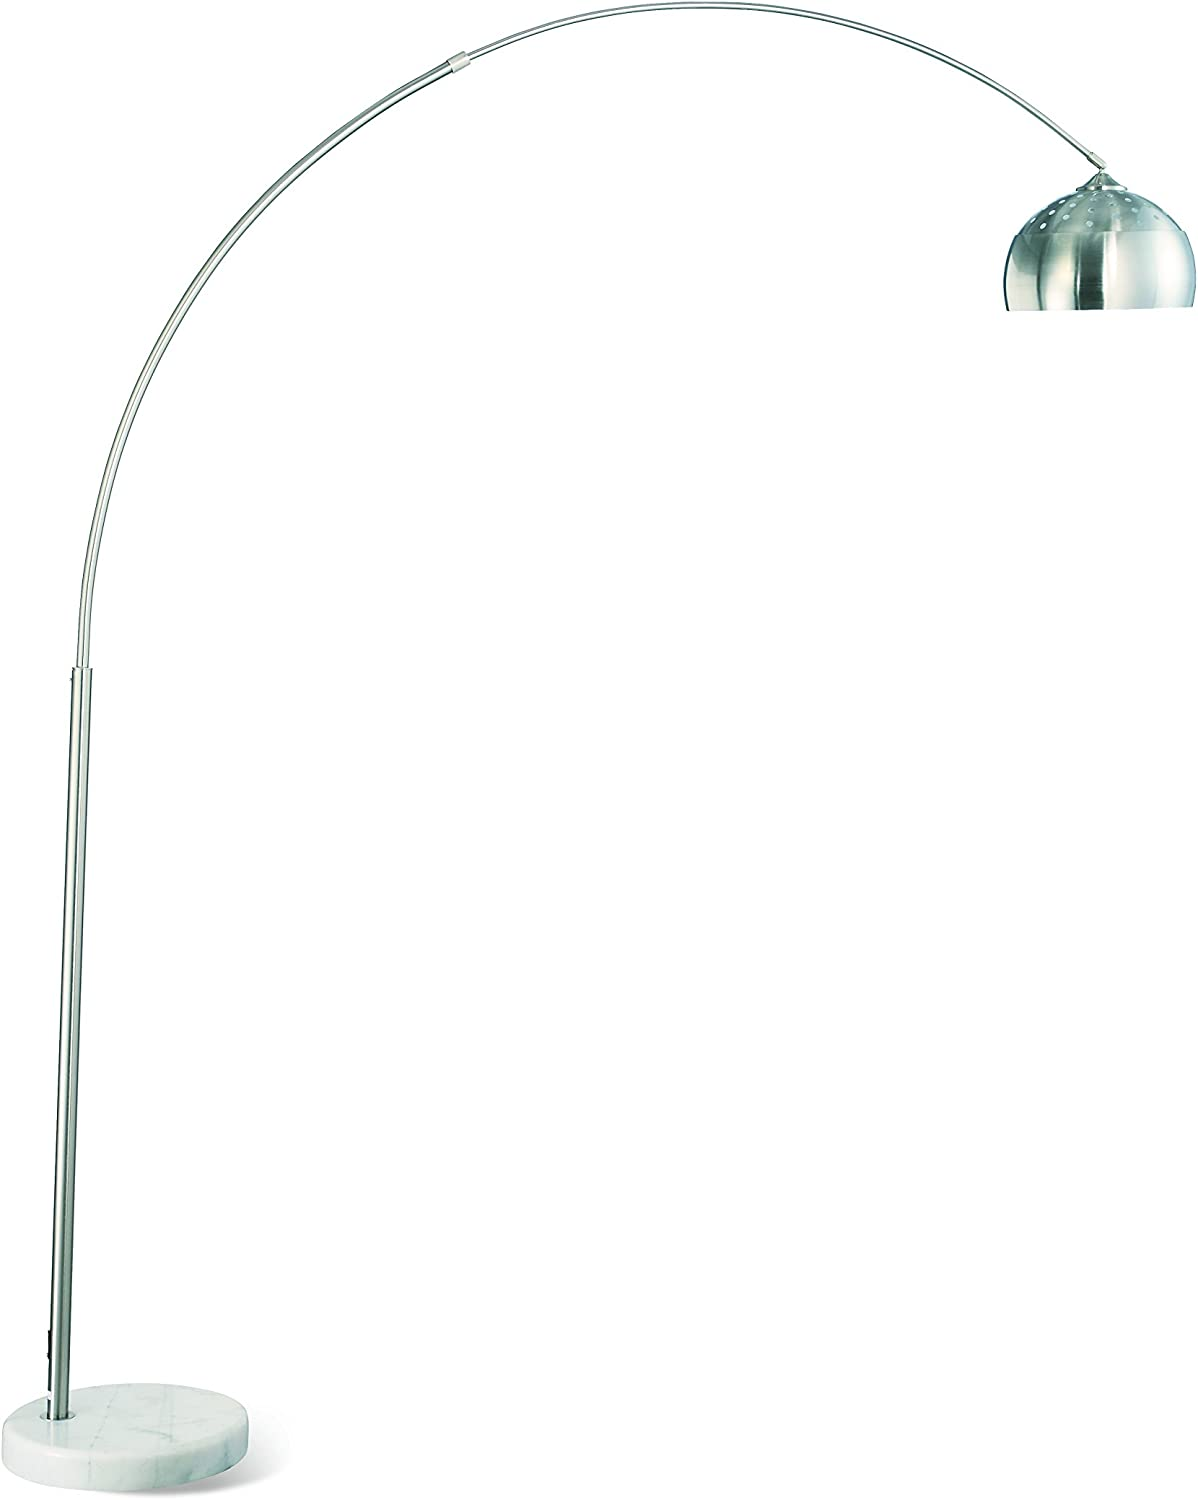 Coaster Home Furnishings Arched Floor Chrome Lamp shopping SEAL limited product